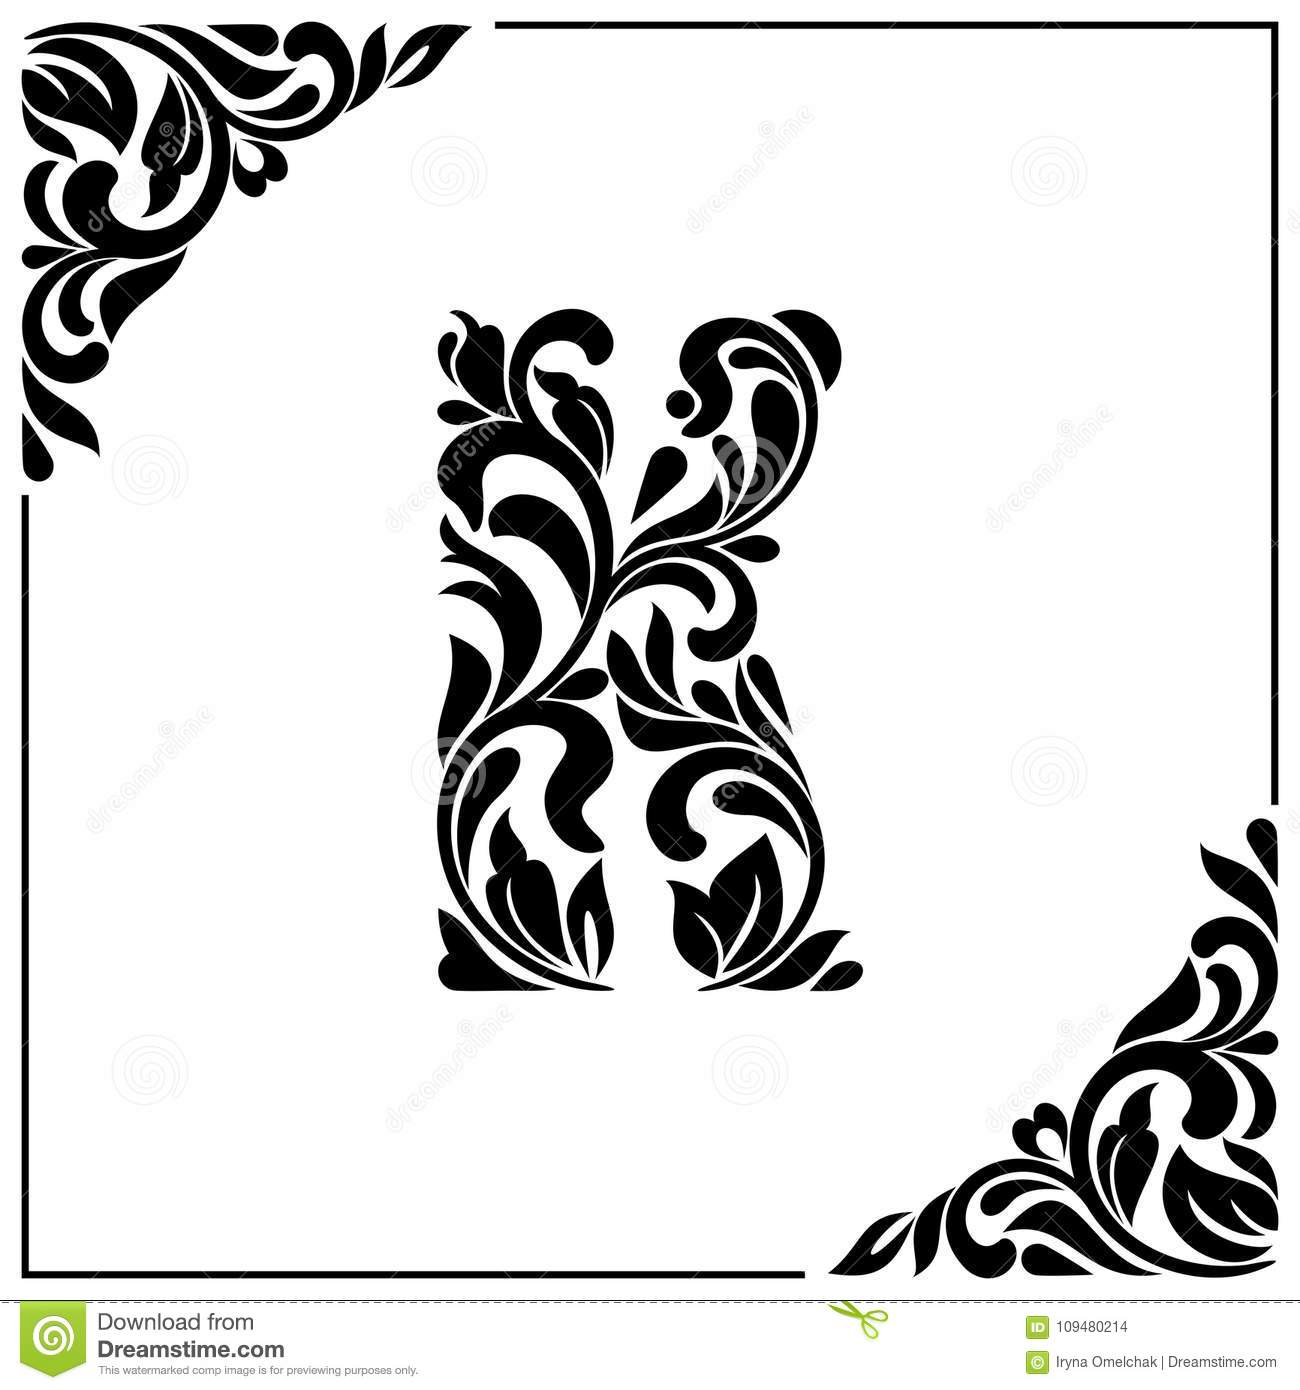 The Letter K Decorative Font With Swirls And Floral Elements